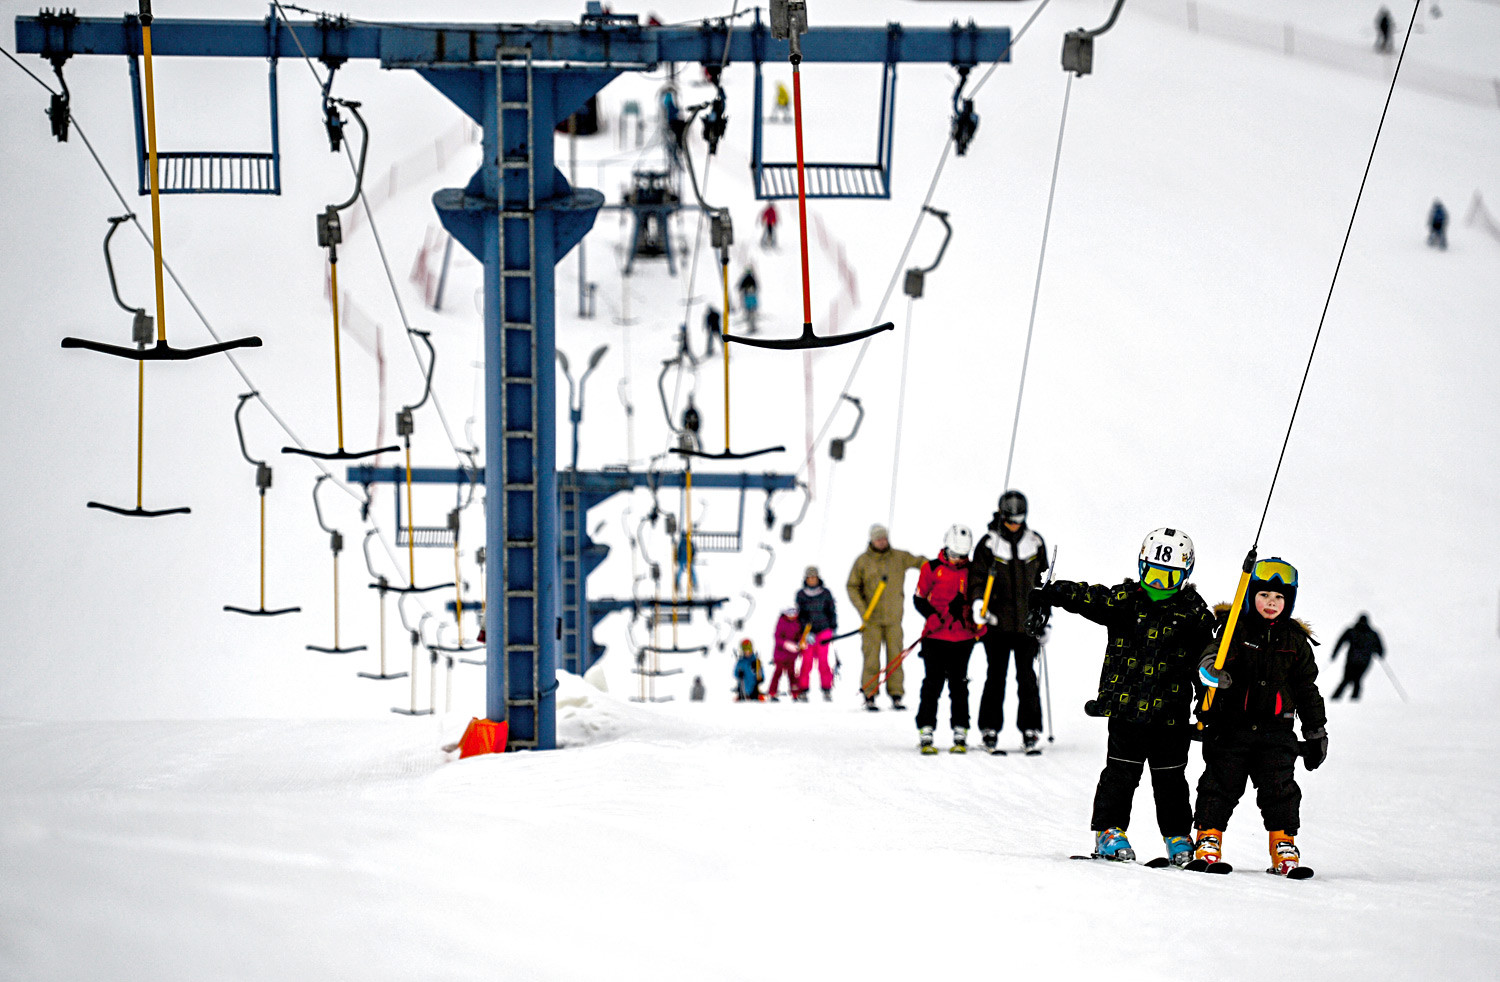 Children use a ski lift in Volen Sports Park (Yahroma) near Moscow.